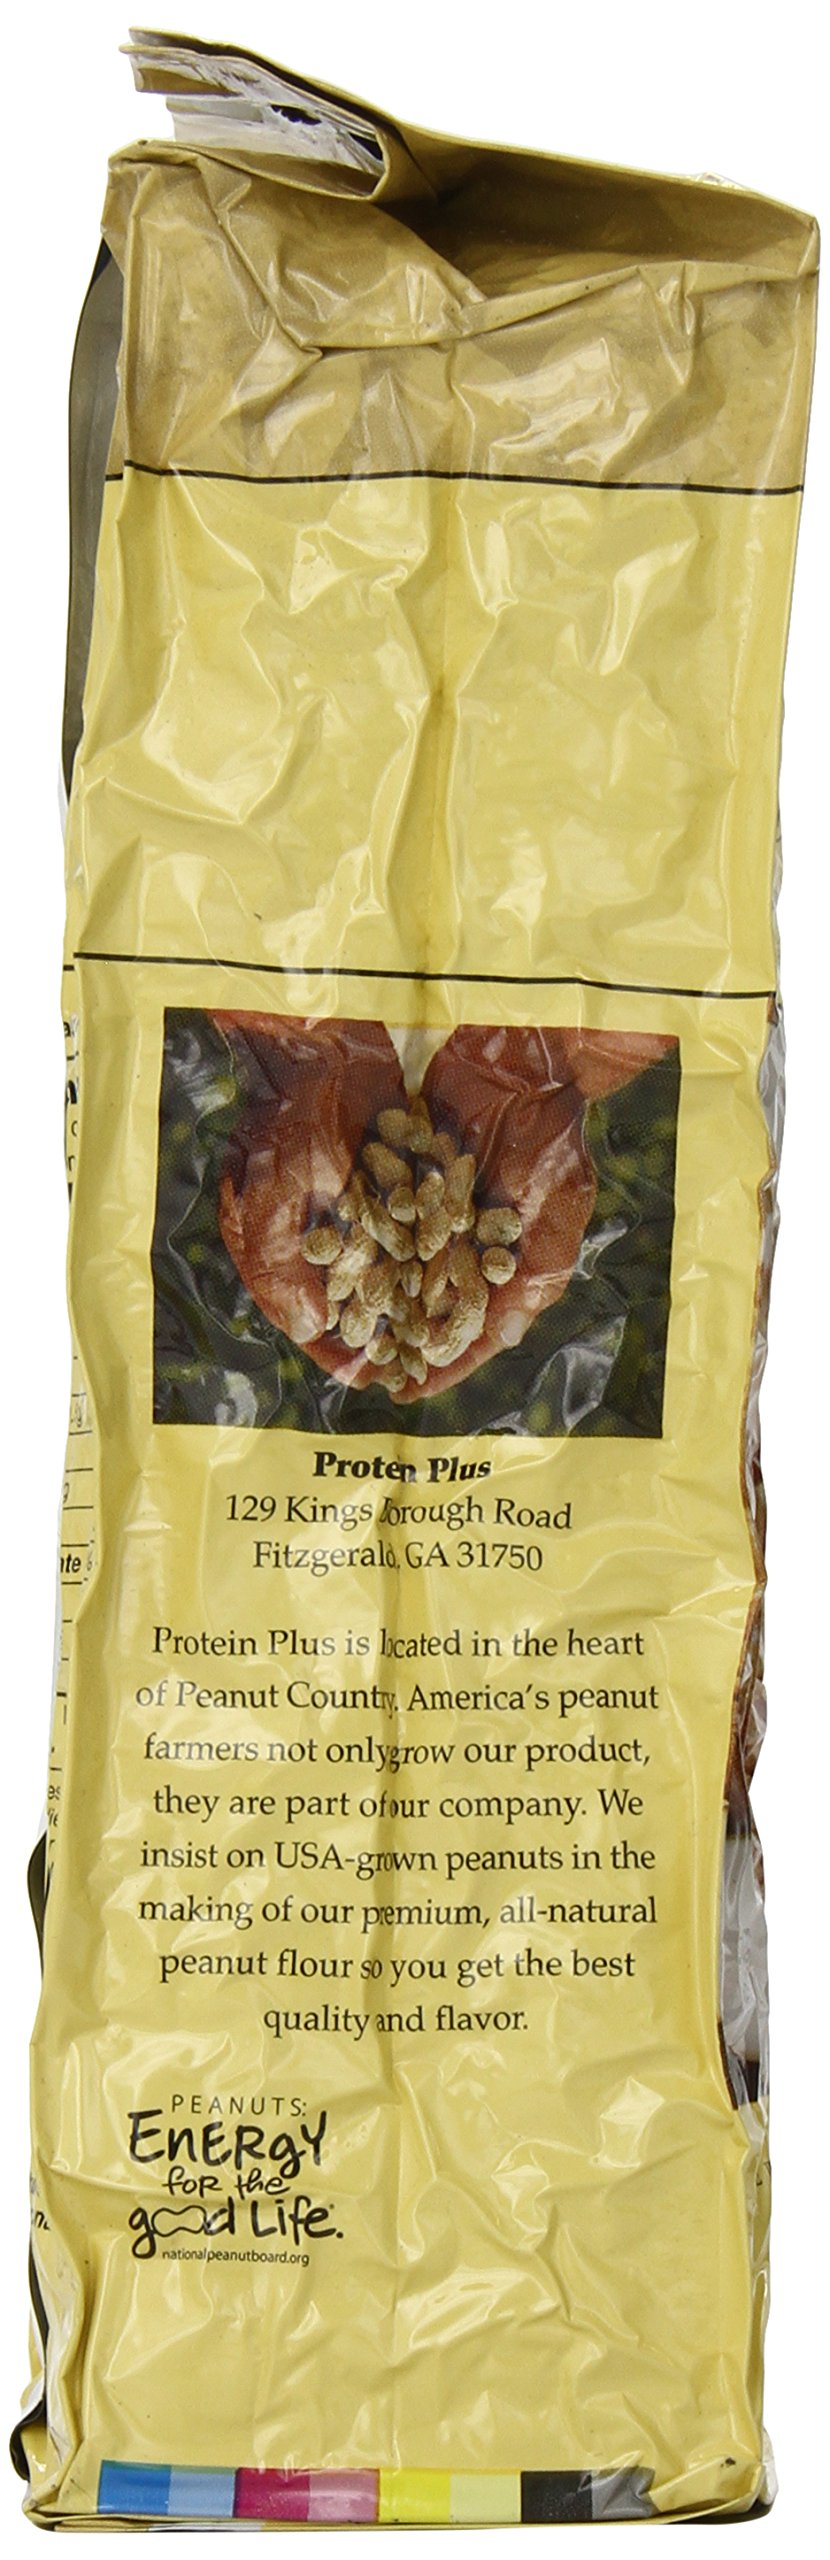 Protein Plus - Roasted All Natural Peanut Flour - 32 oz by Protein Plus (Image #5)